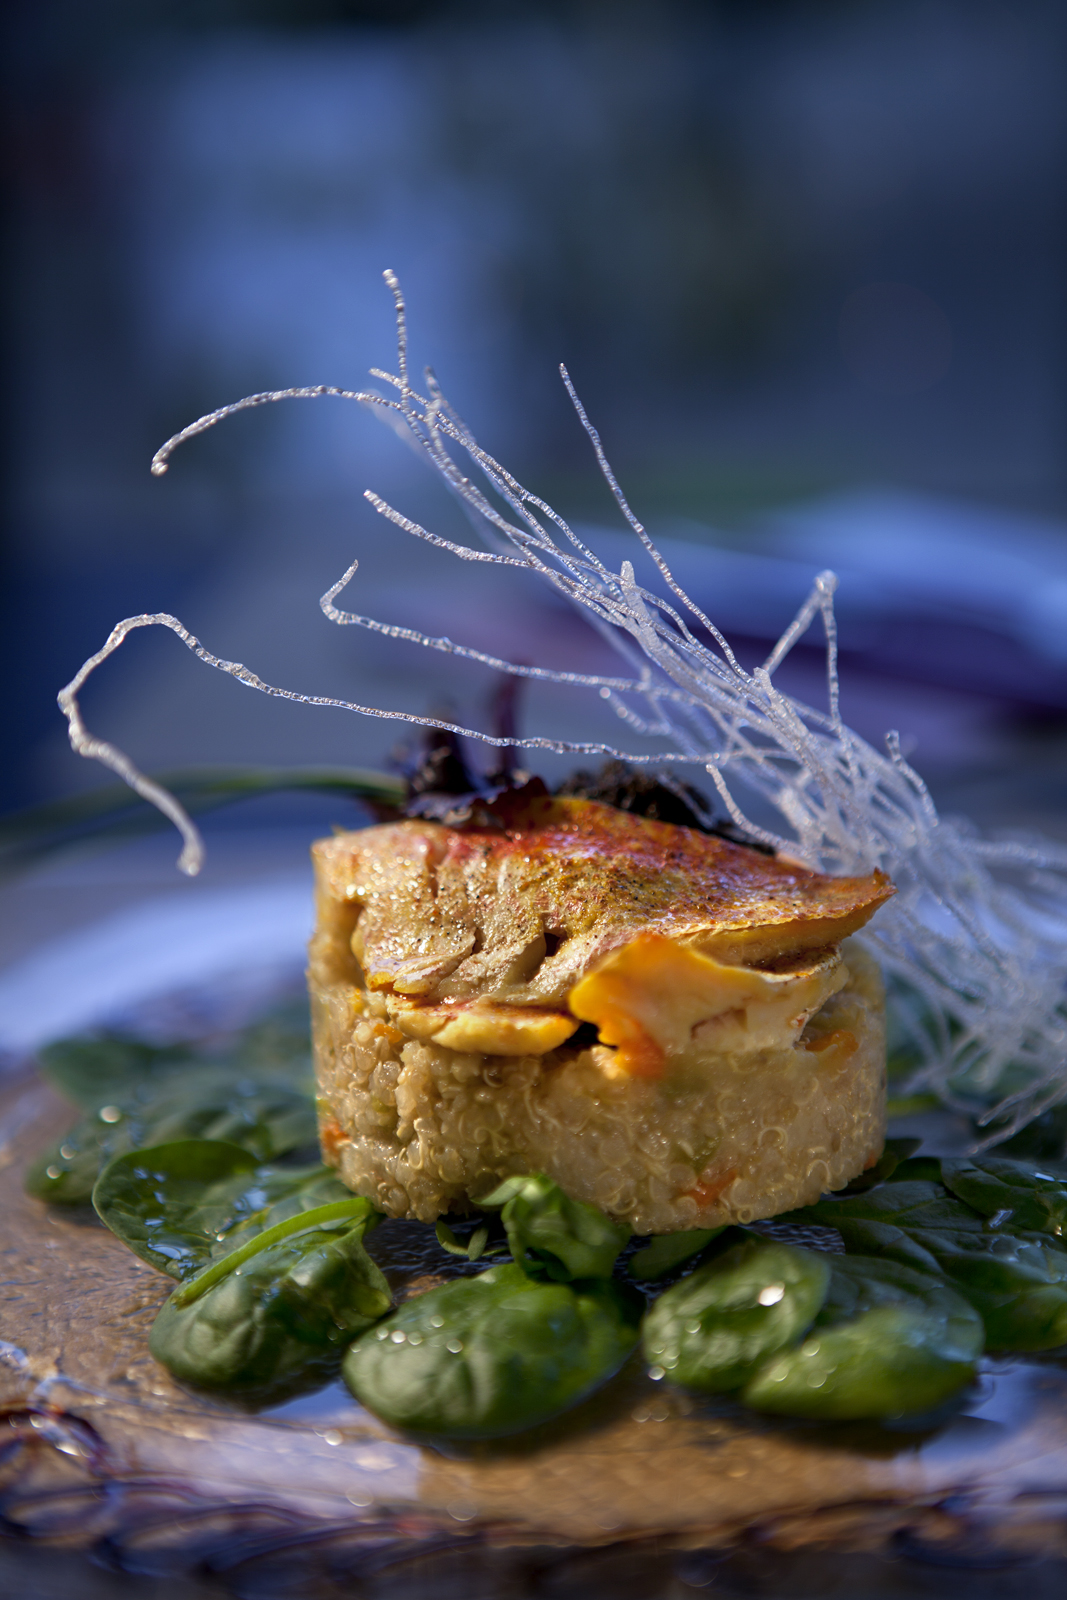 image culinaire, Photographe culinaire @ Montpellier